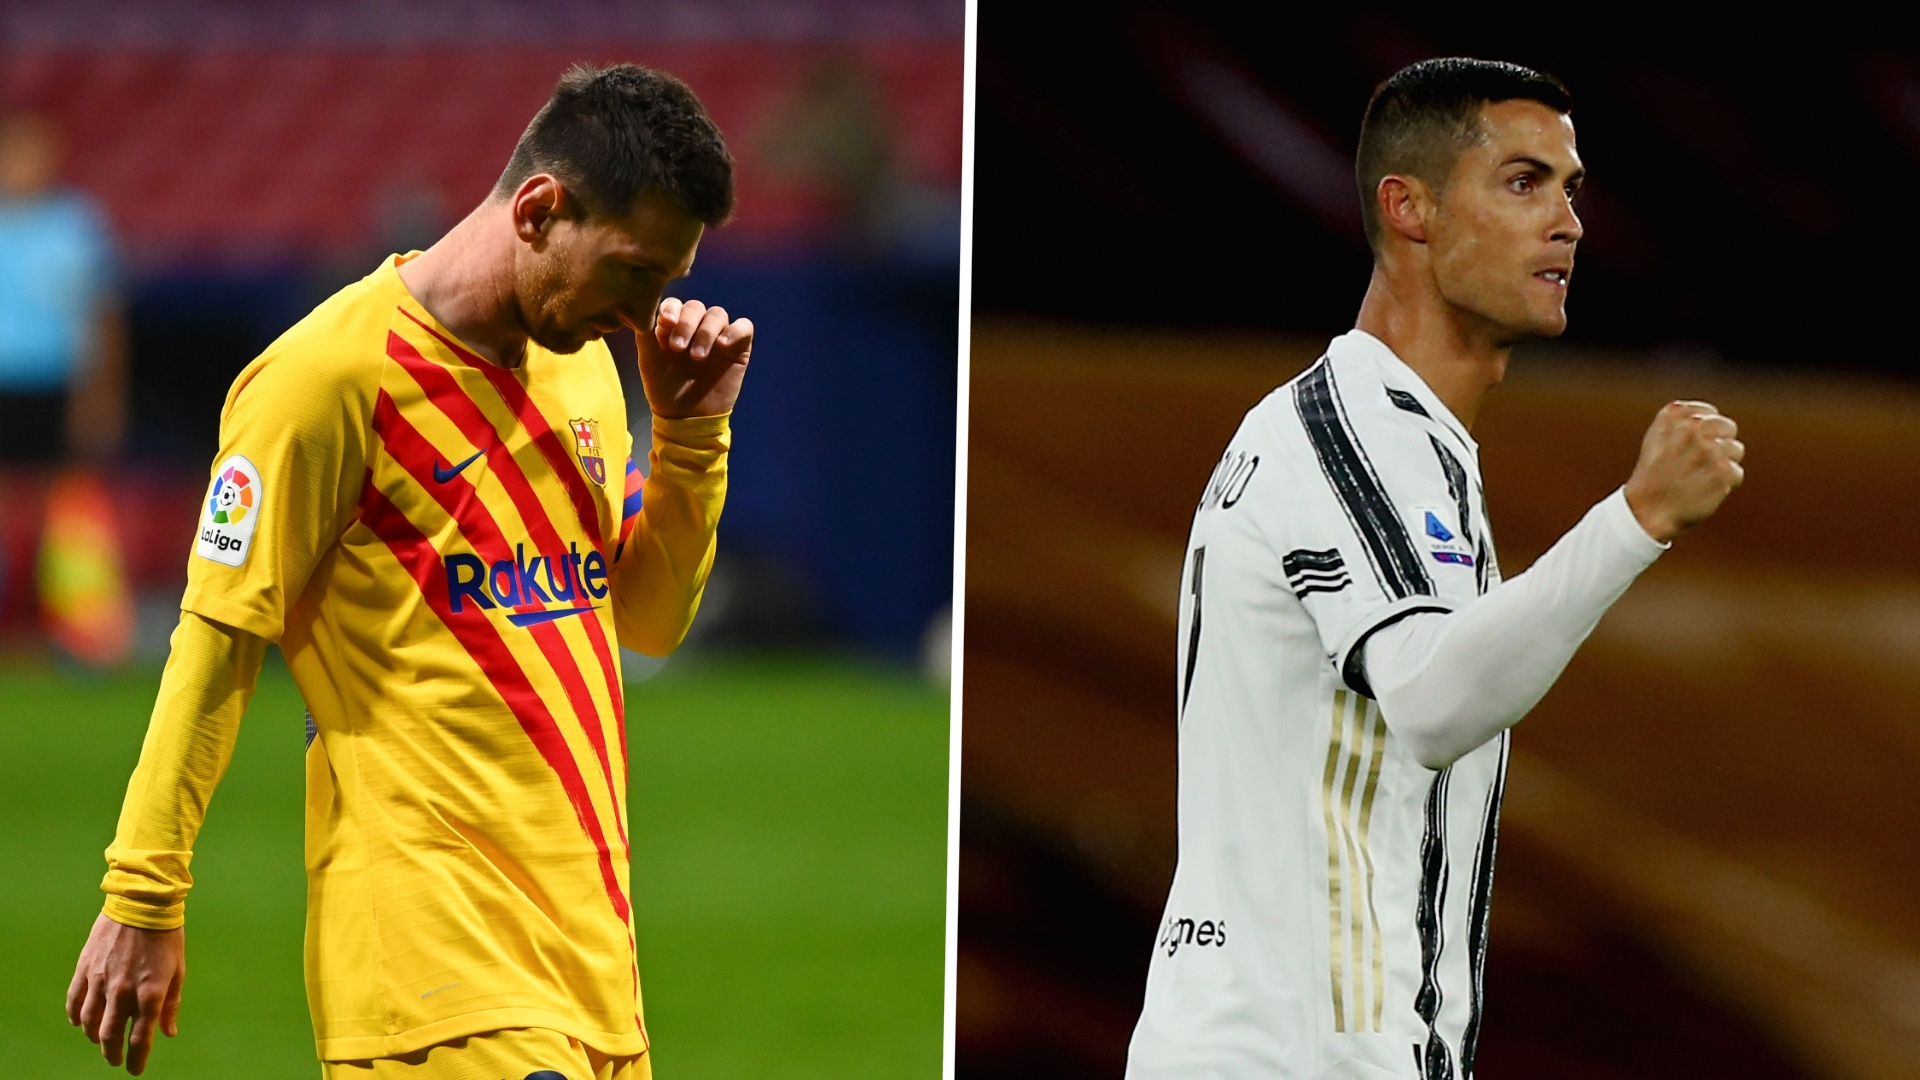 Messi harder to defend against than Ronaldo, says former Germany international Friedrich